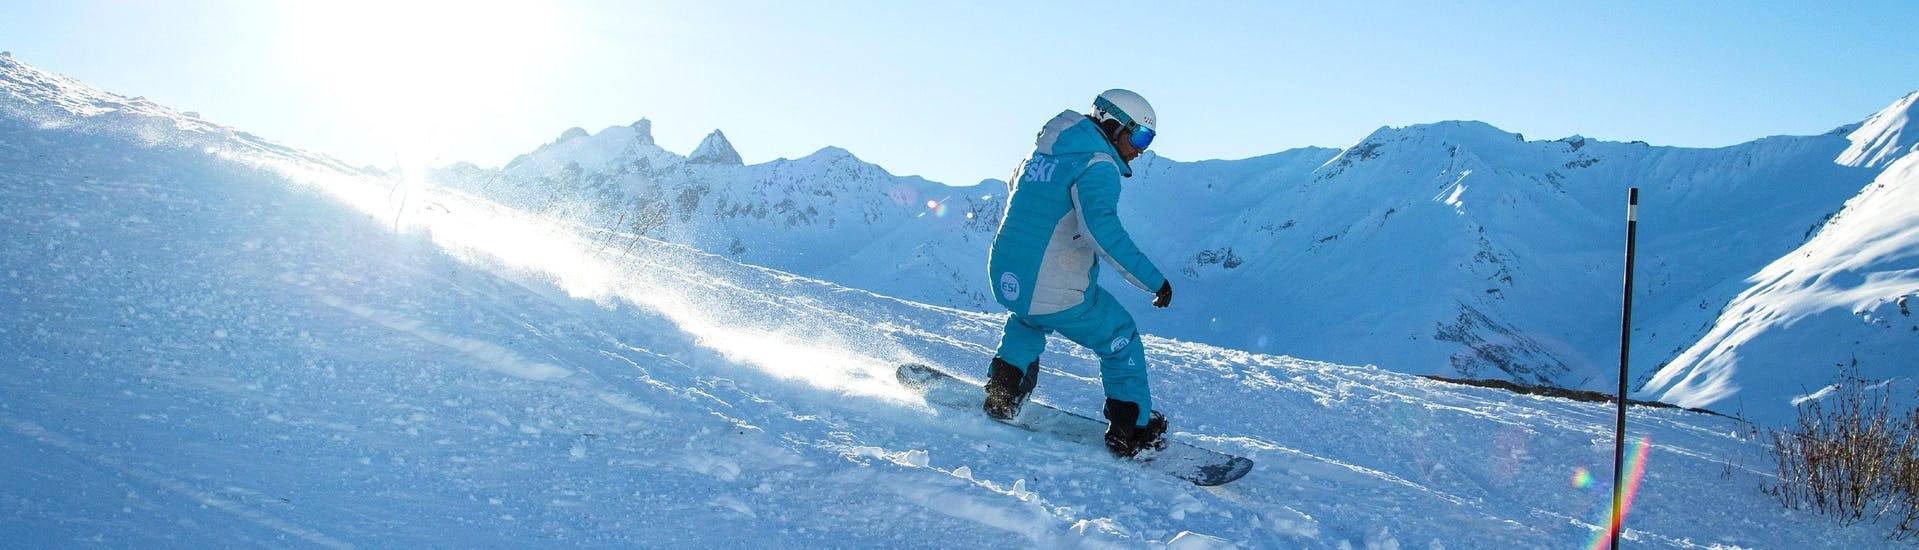 A snowboarder is sliding down a slope during his Private Snowboarding Lessons for All Levels - Morning with the ski school ESI Ski Family in Risoul.